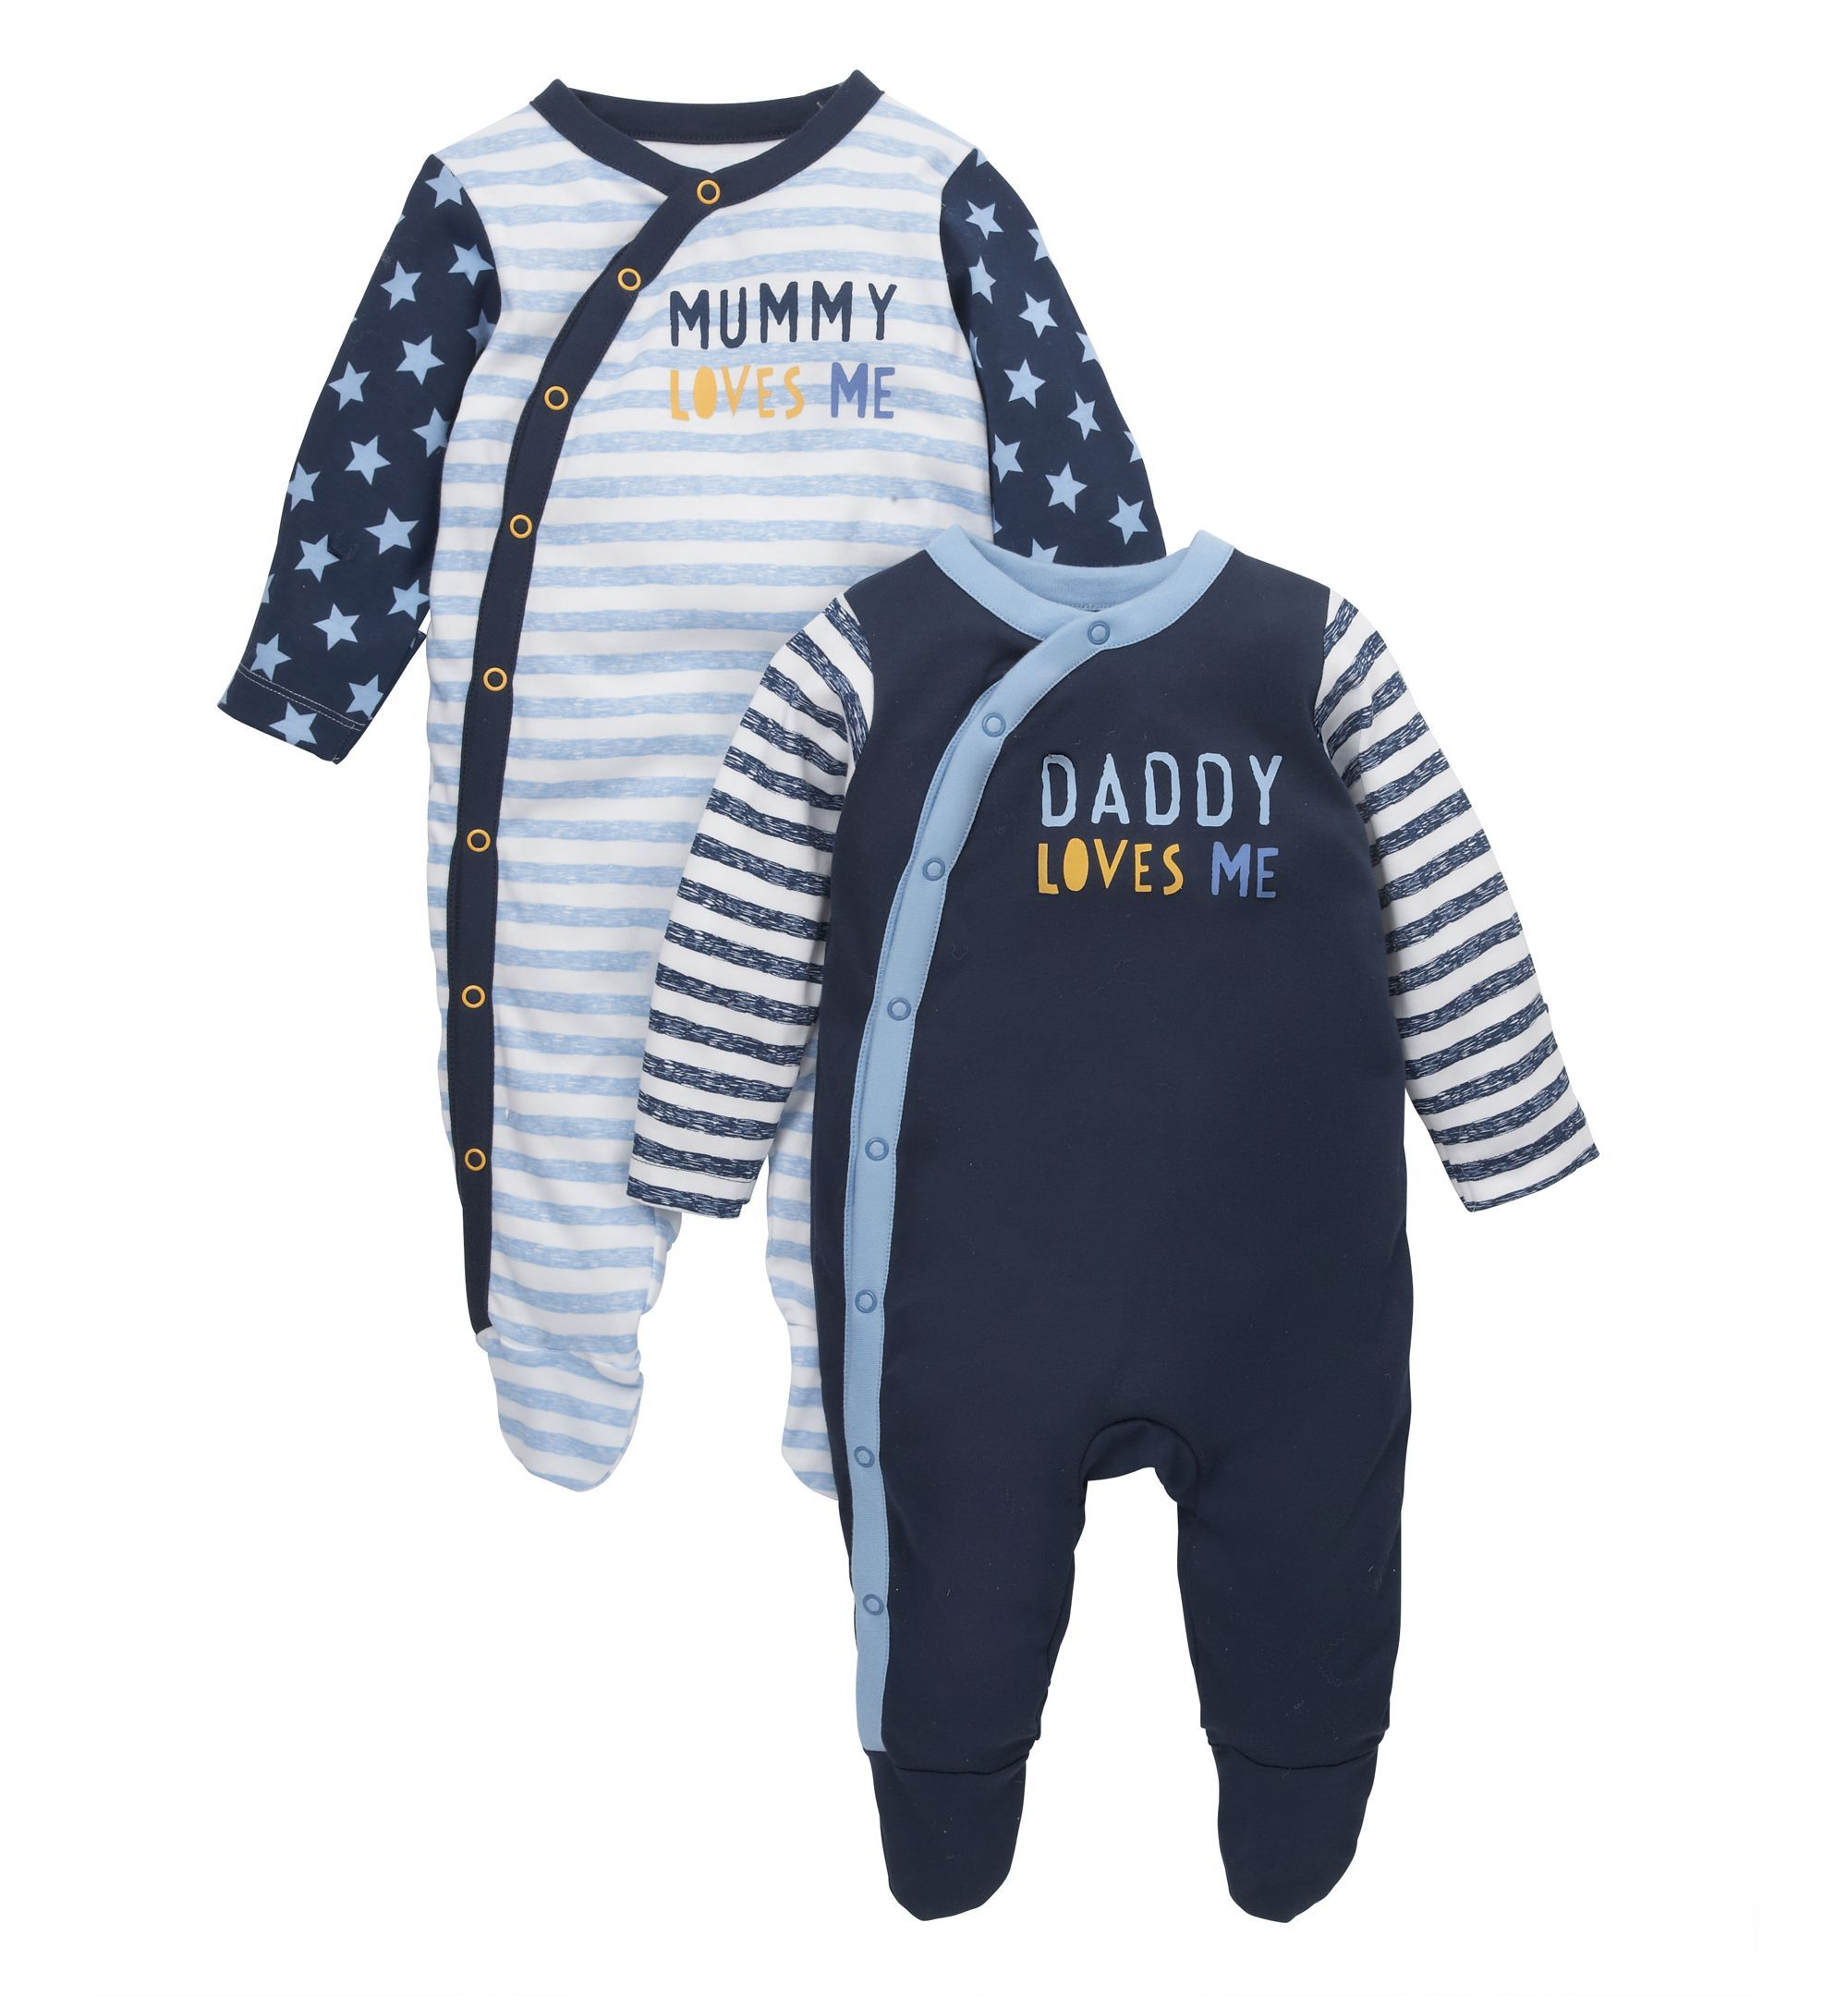 Mothercare Mummy and Daddy Sleepsuits 2 Pack